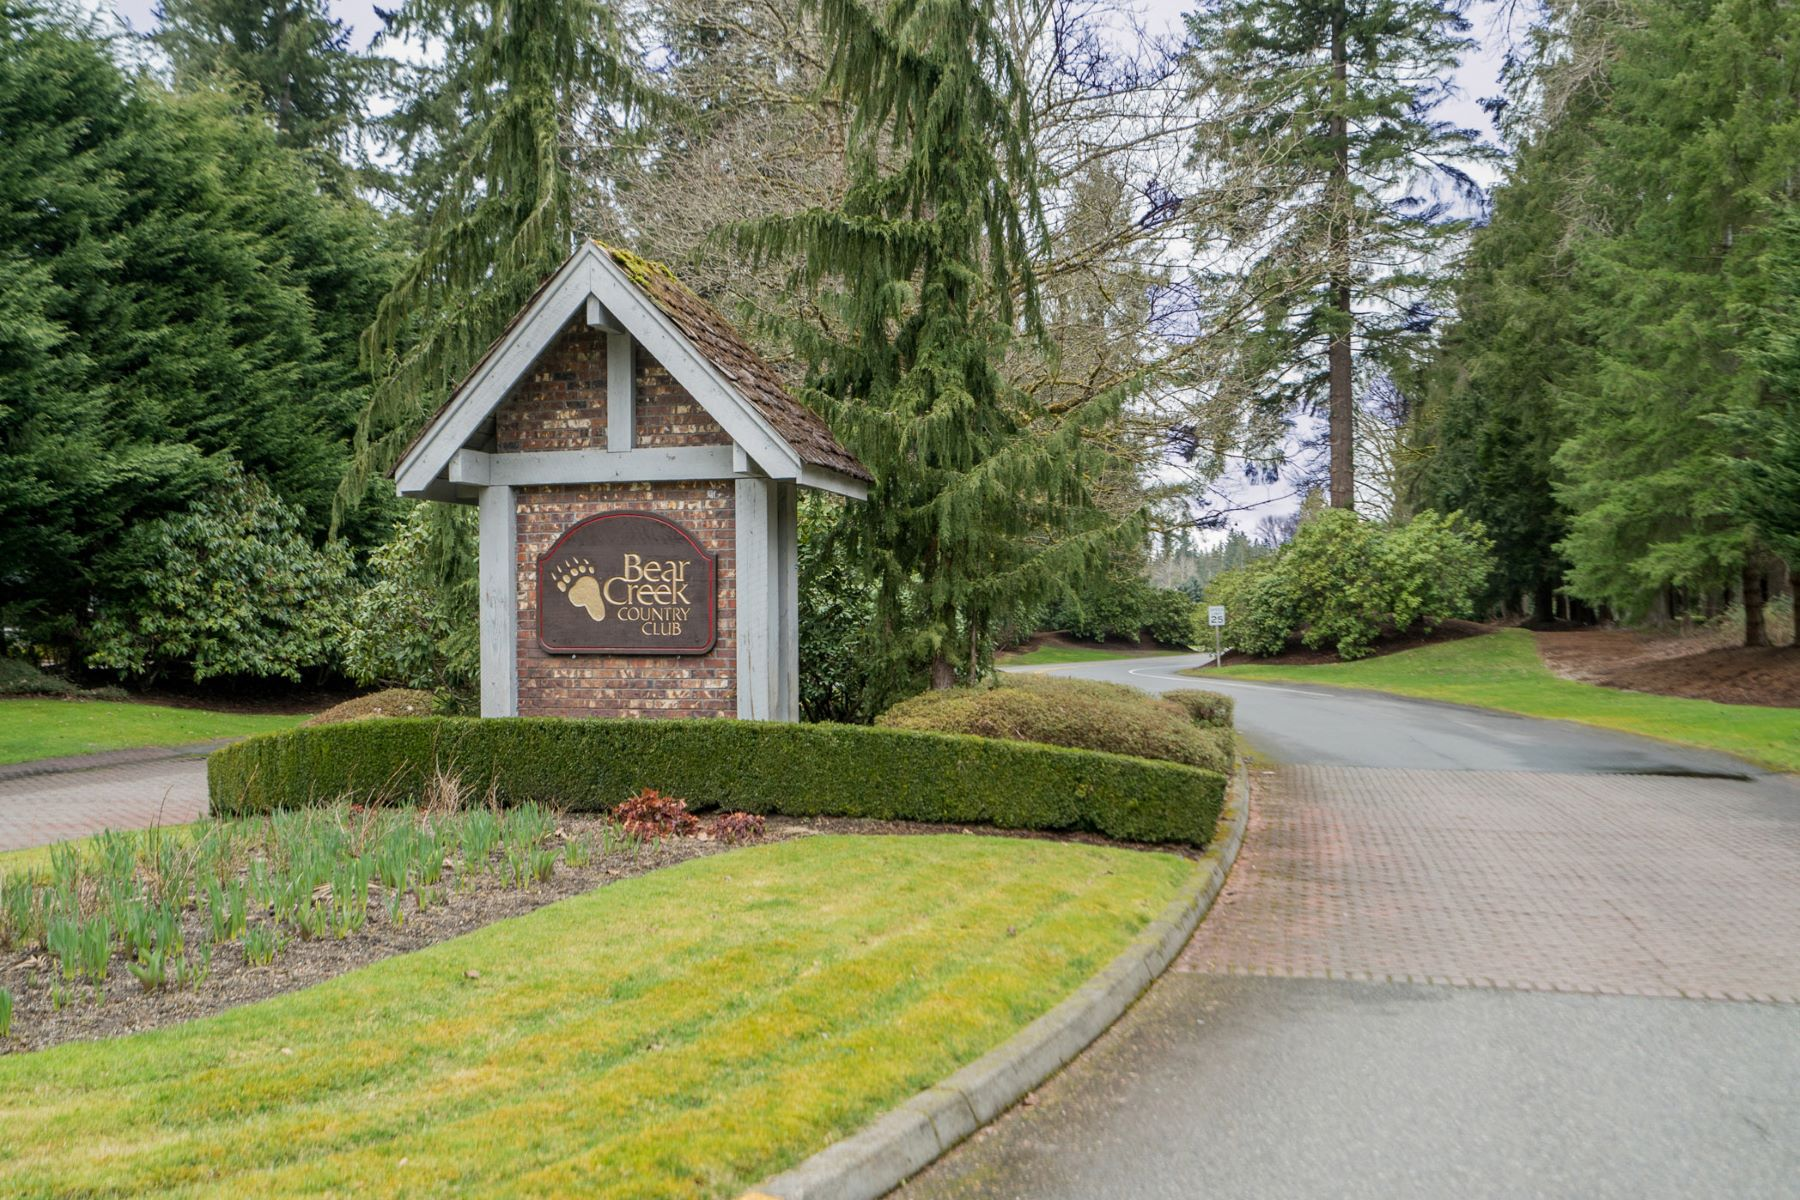 Single Family Home for Sale at Bear Creek Country Club 14239 209th Ave NE Woodinville, Washington 98077 United States